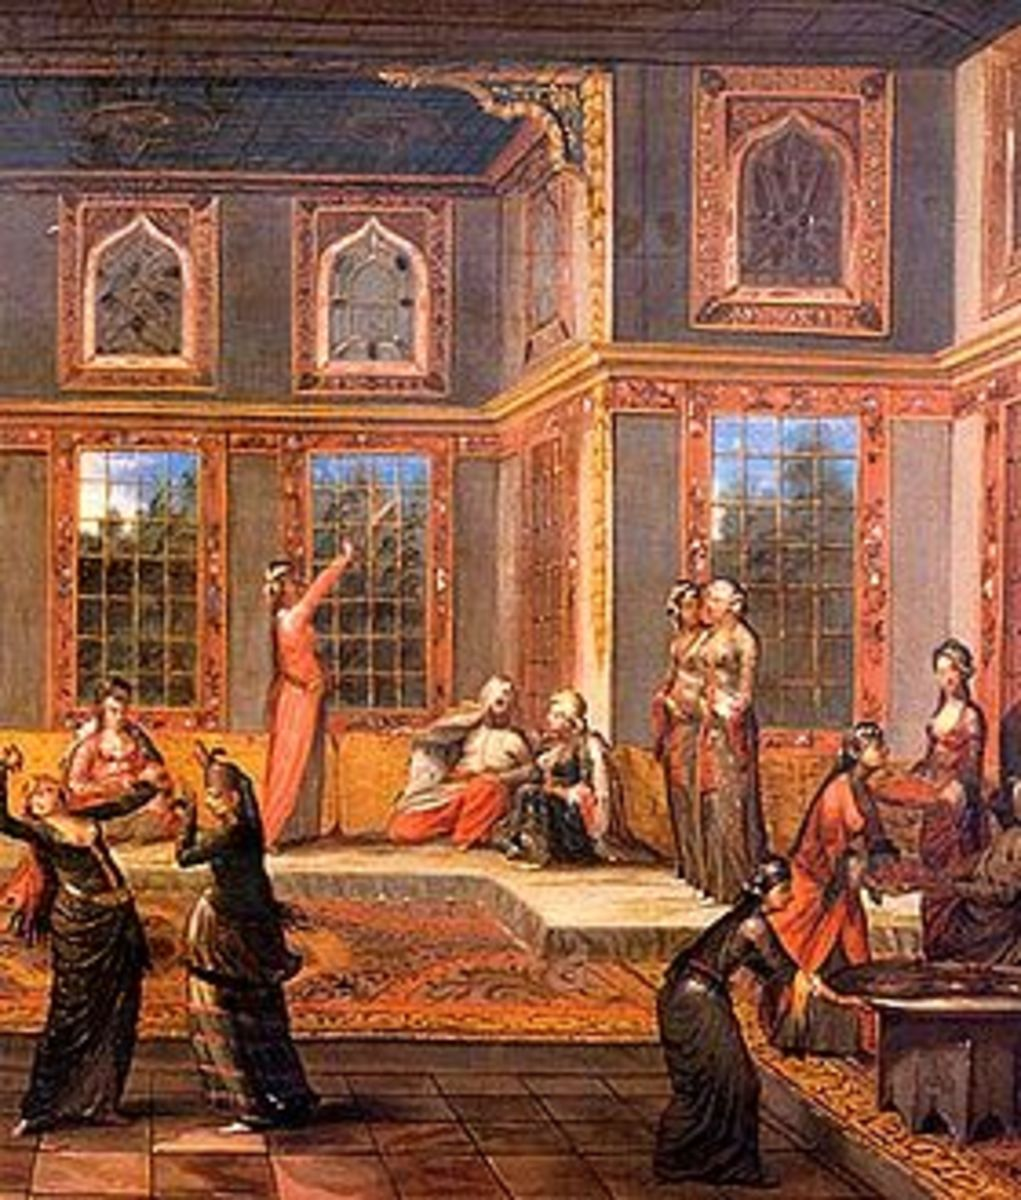 the-harem-luxuries-and-enslavement-within-the-sultans-palace